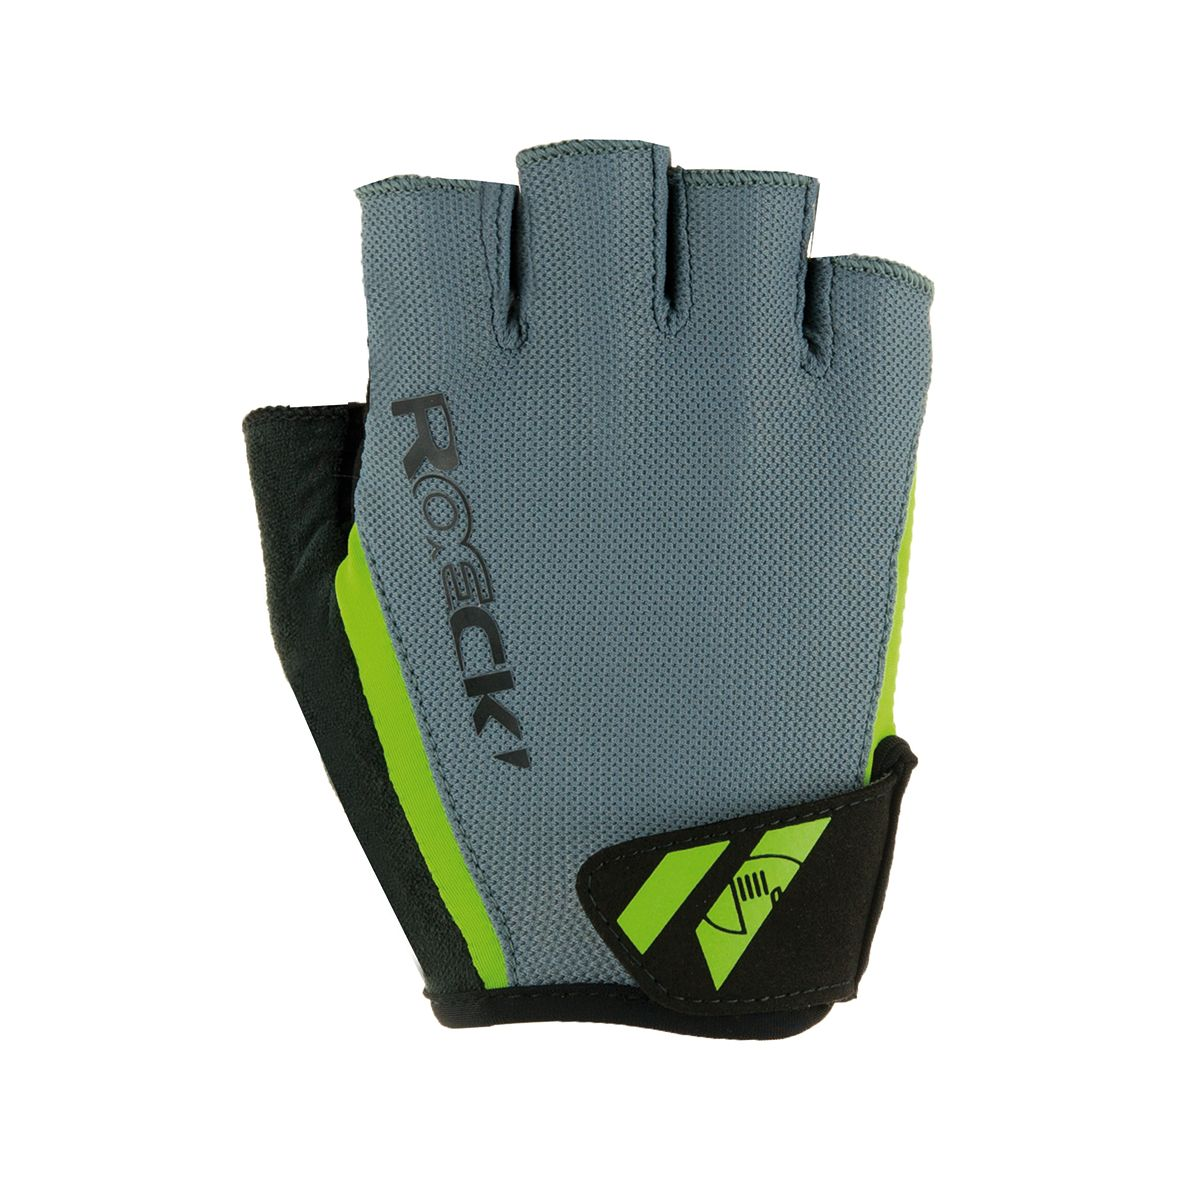 ILIO cycling gloves